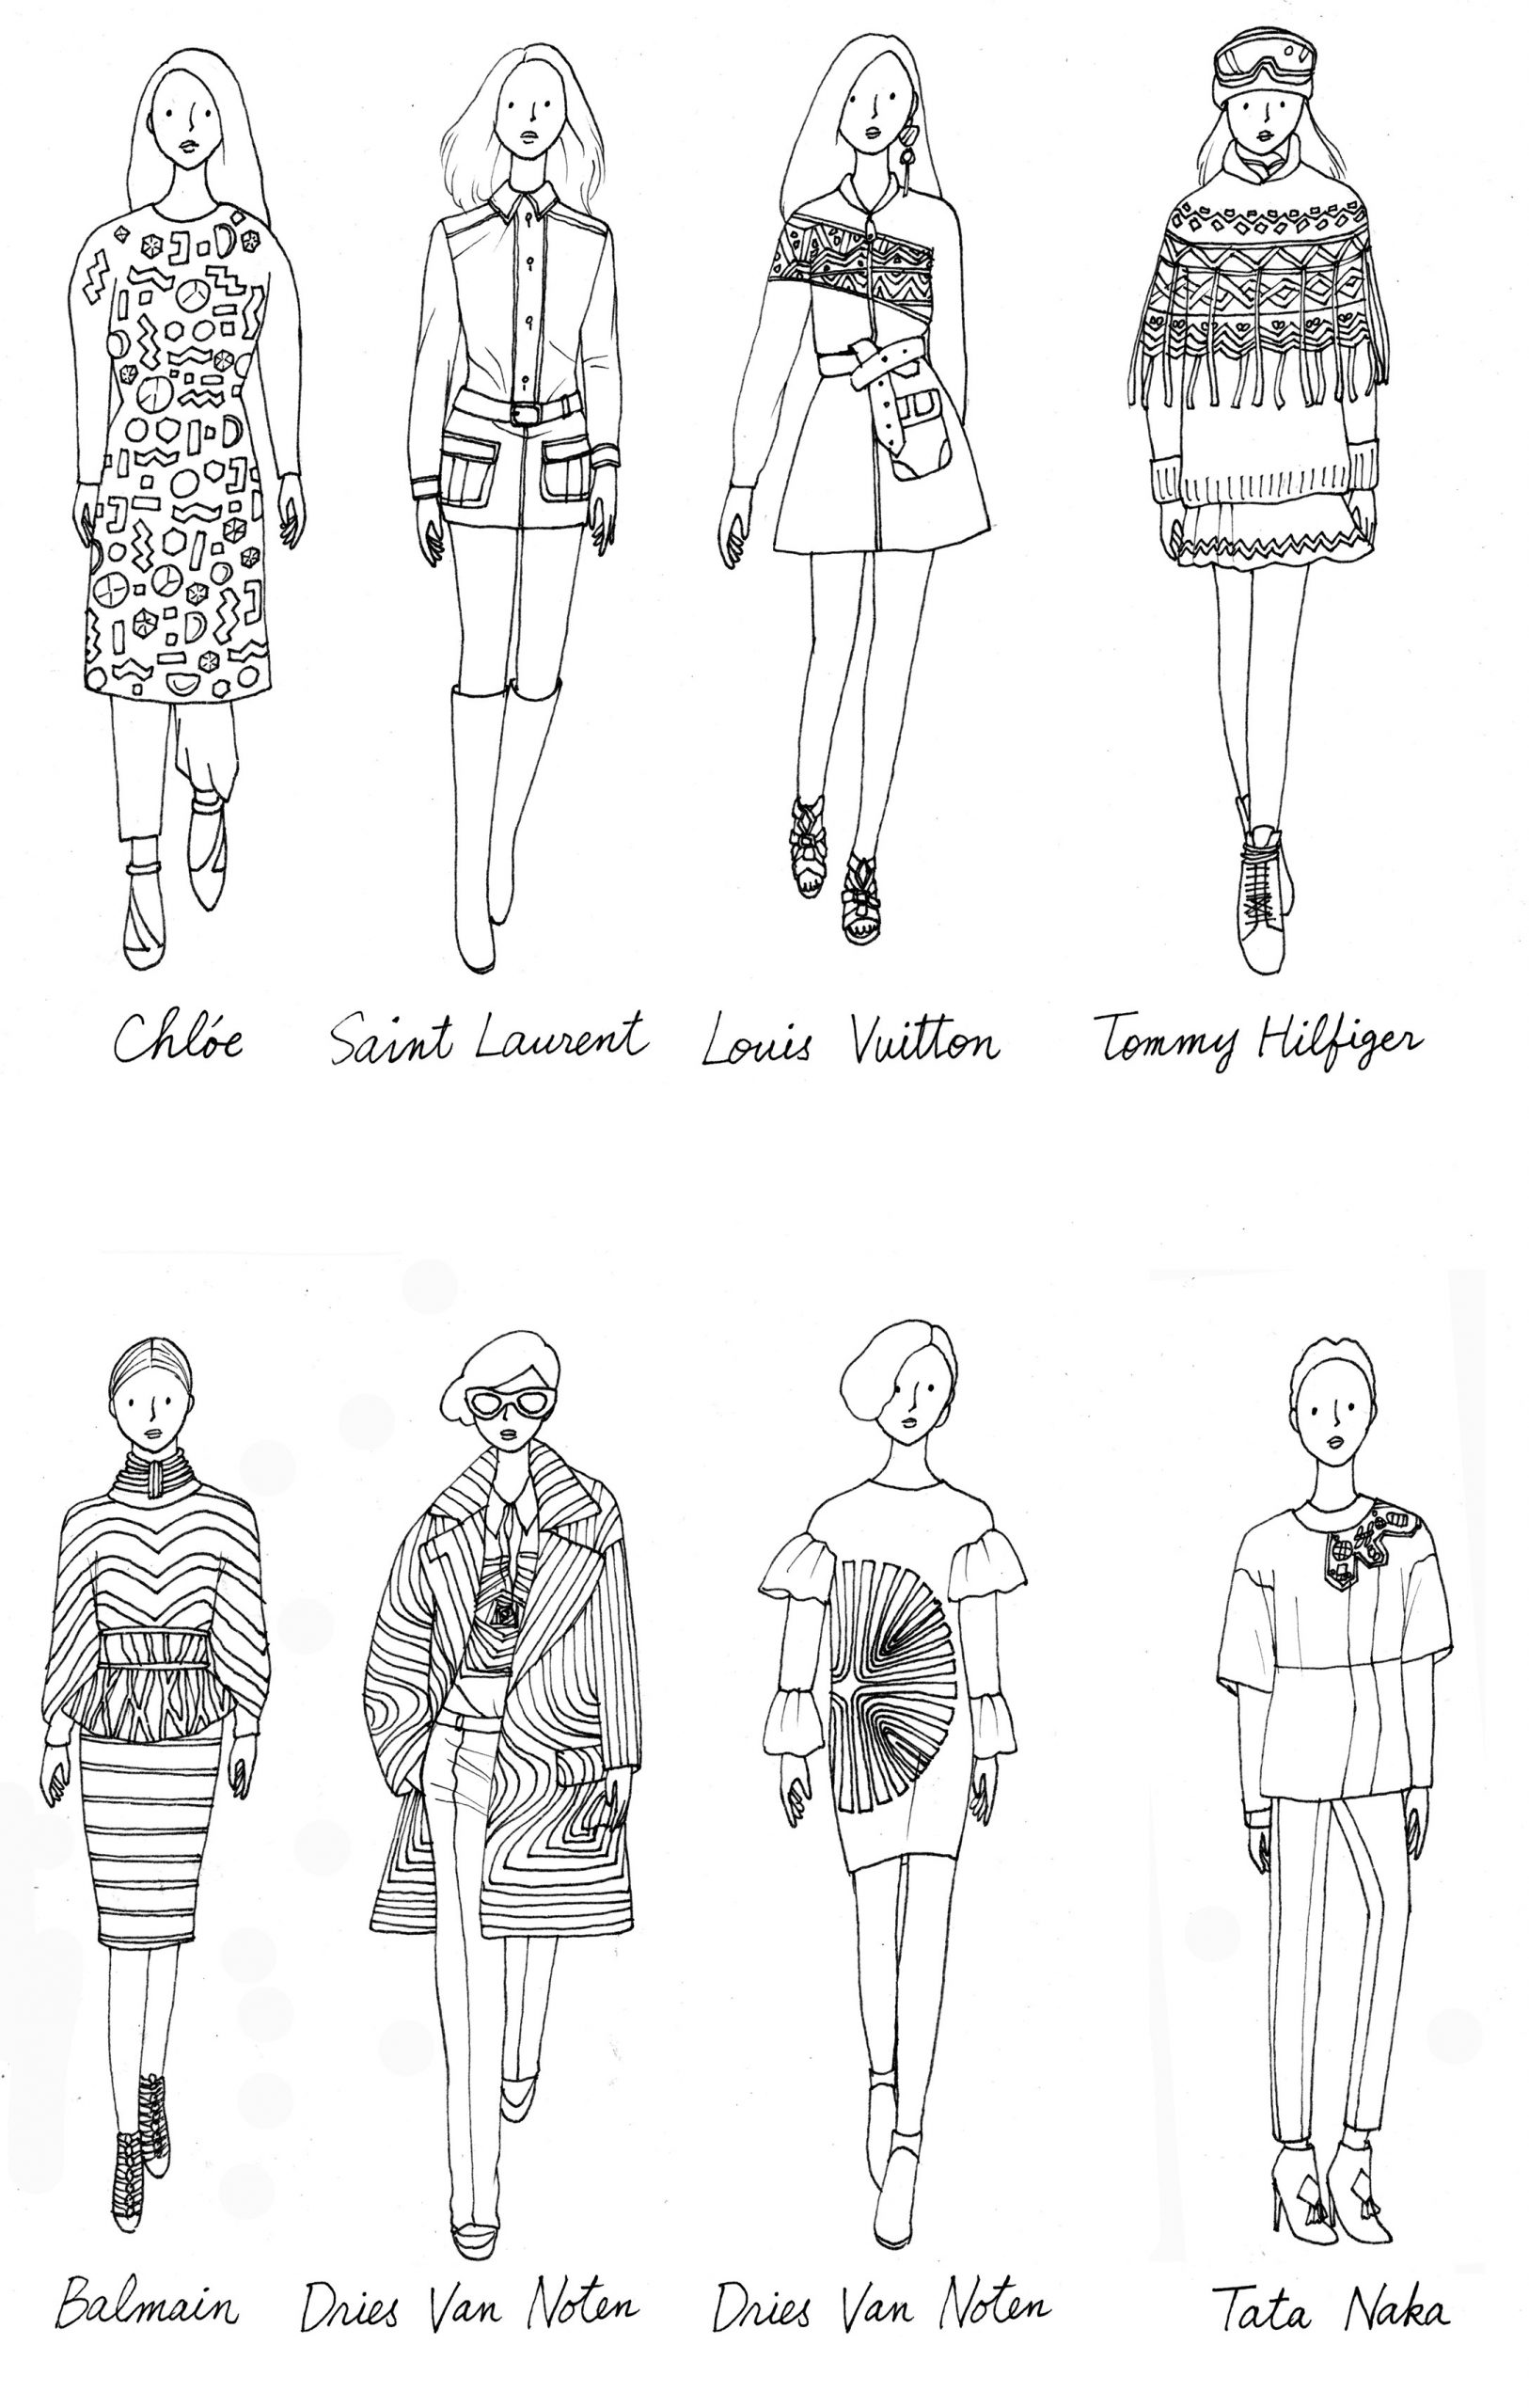 Coloriage Adulte Anti-Stress - Les Beaux Dessins De destiné Coloriage De Mode À Imprimer